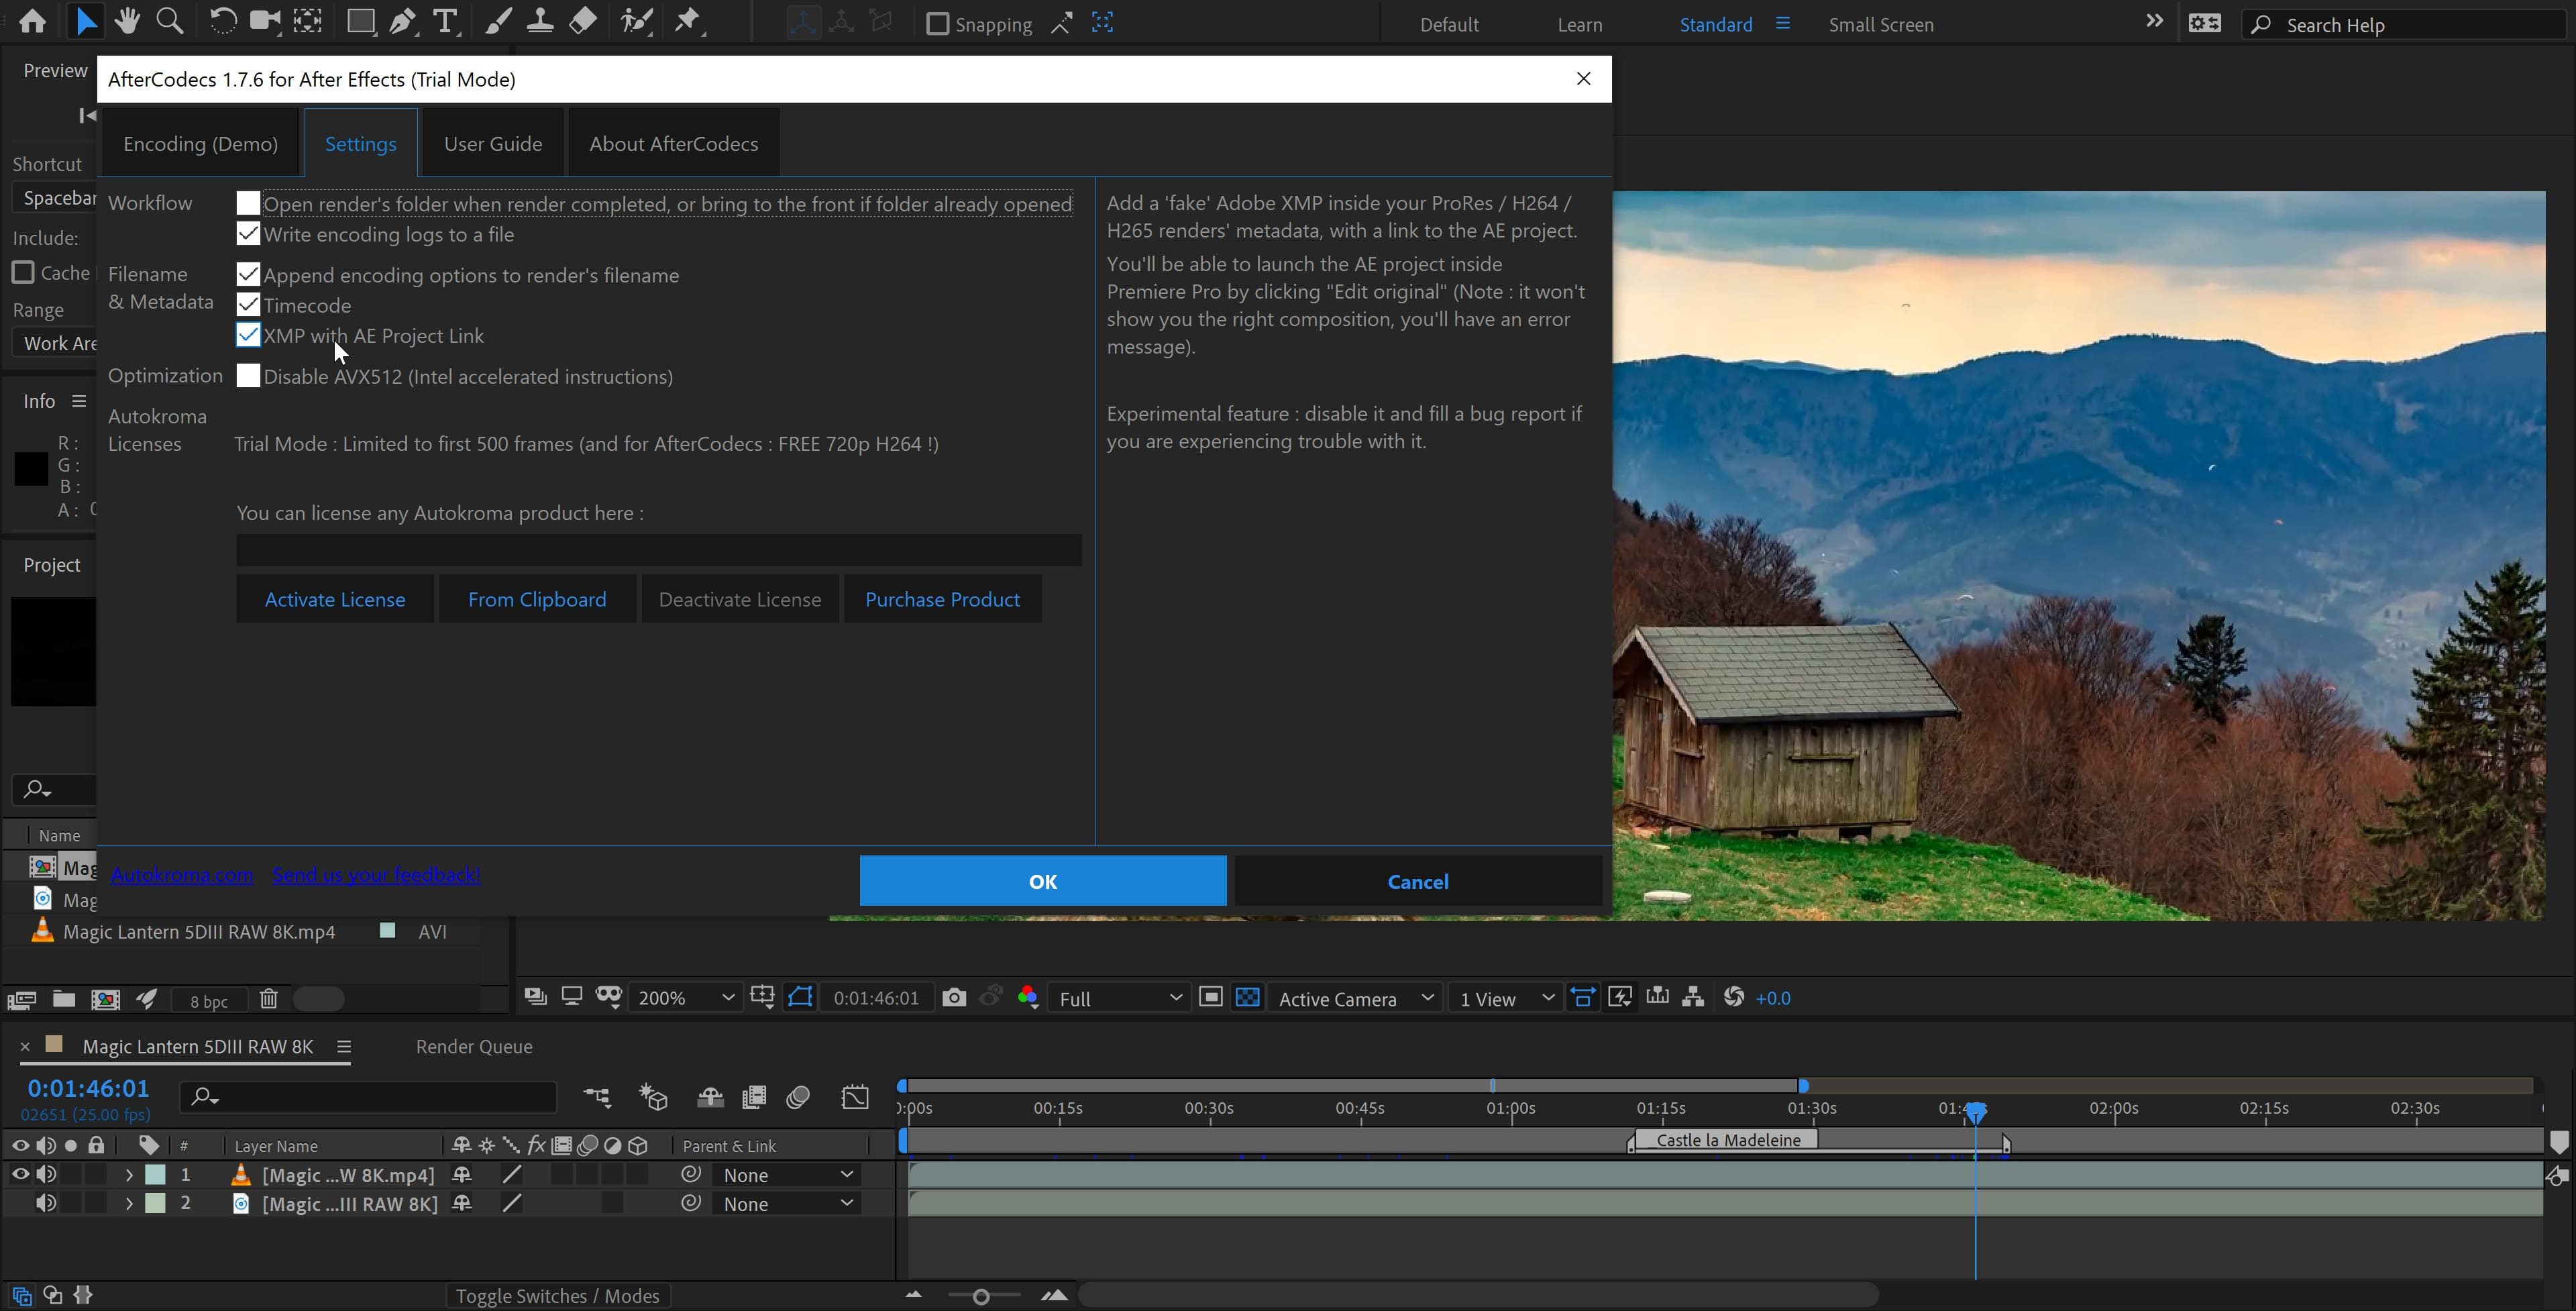 AfterCodecs for Adobe After Effects on Microsoft Windows (Fast exporter plugin screenshot)